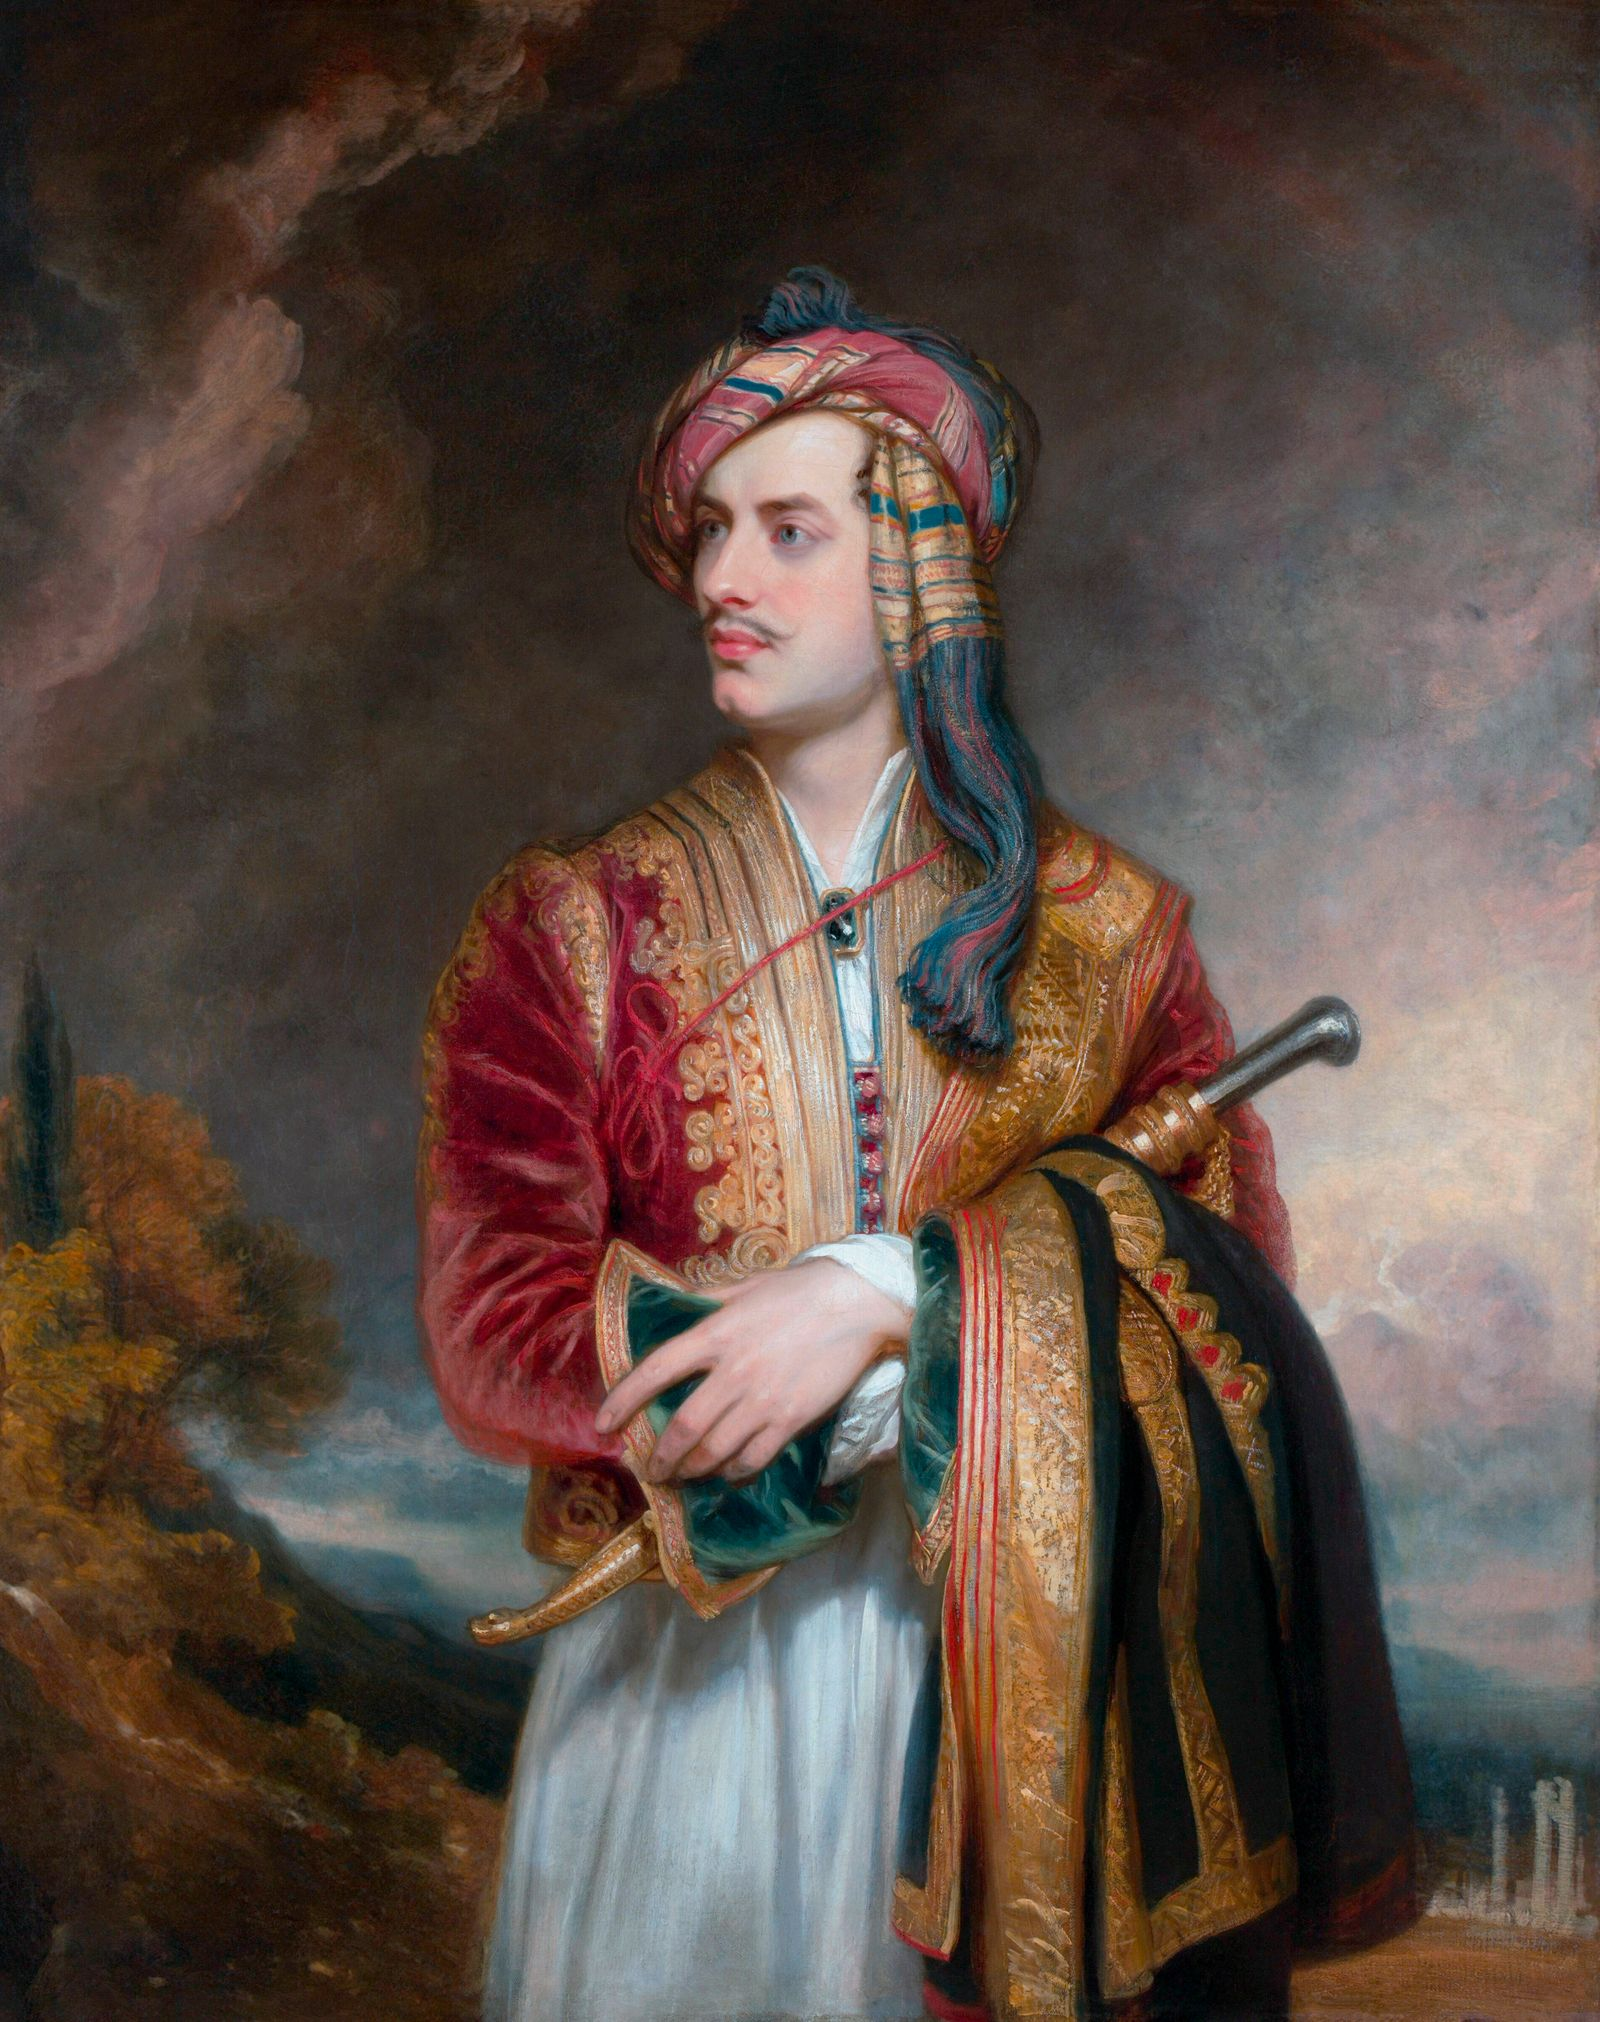 Literary history painting of English poet Lord Byron in Albanian Dress. Original by Thomas Phillips, 1813. Copyright: Ve